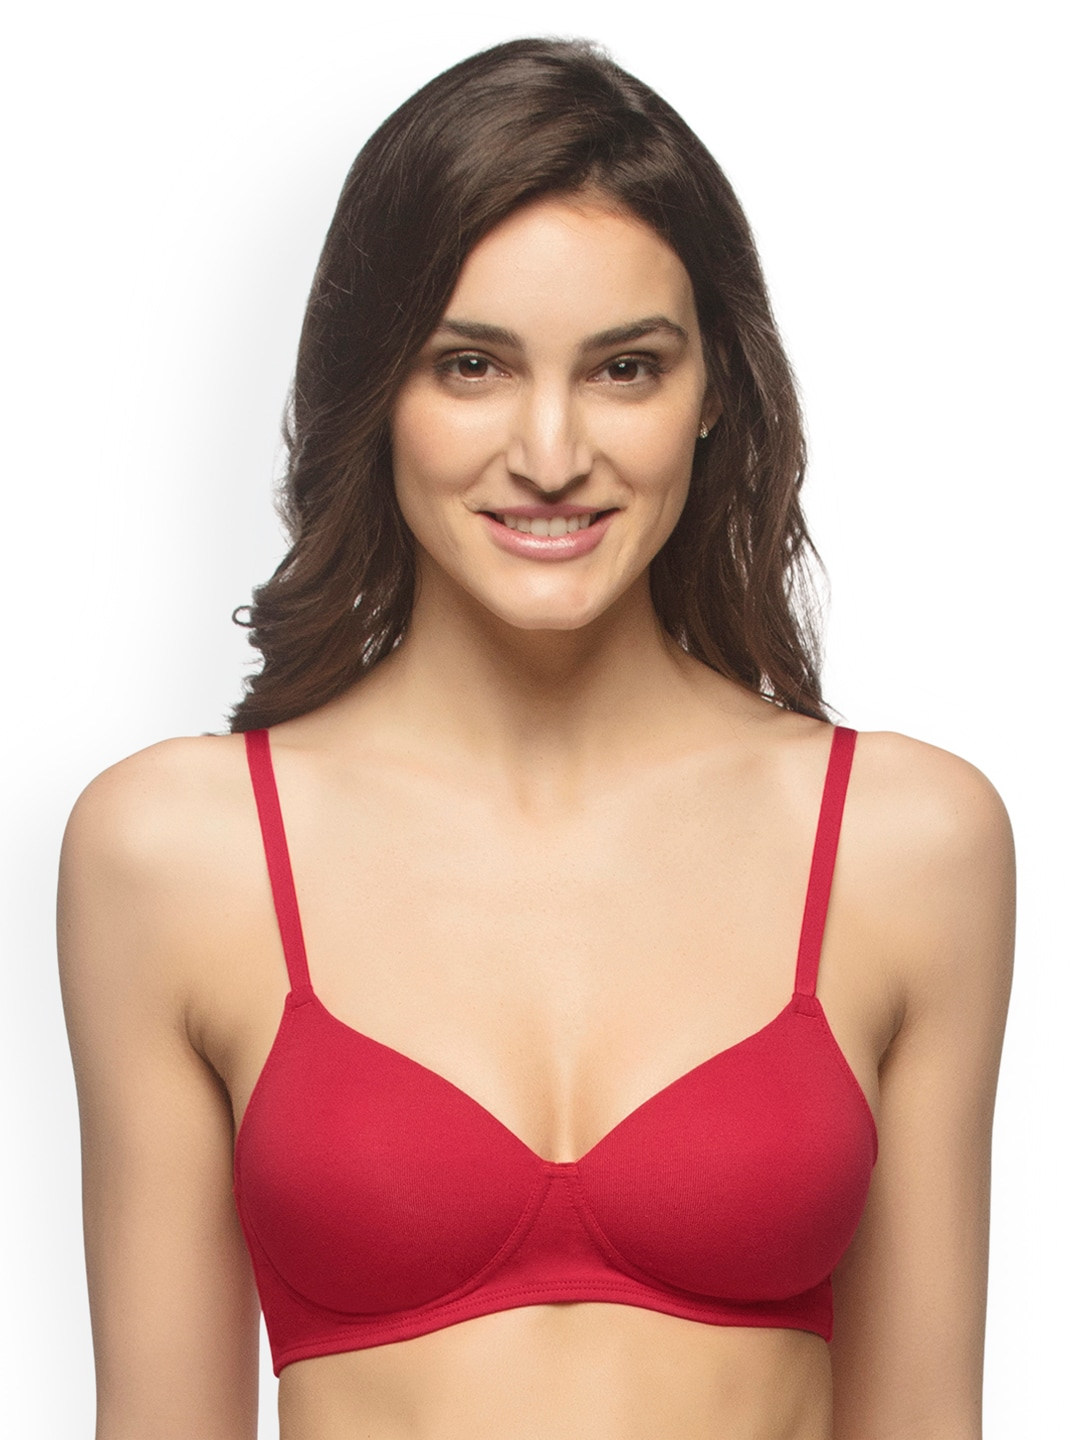 988917c7d086c Amante Red Solid Padded T Shirt Bra for women price in India on 2nd ...